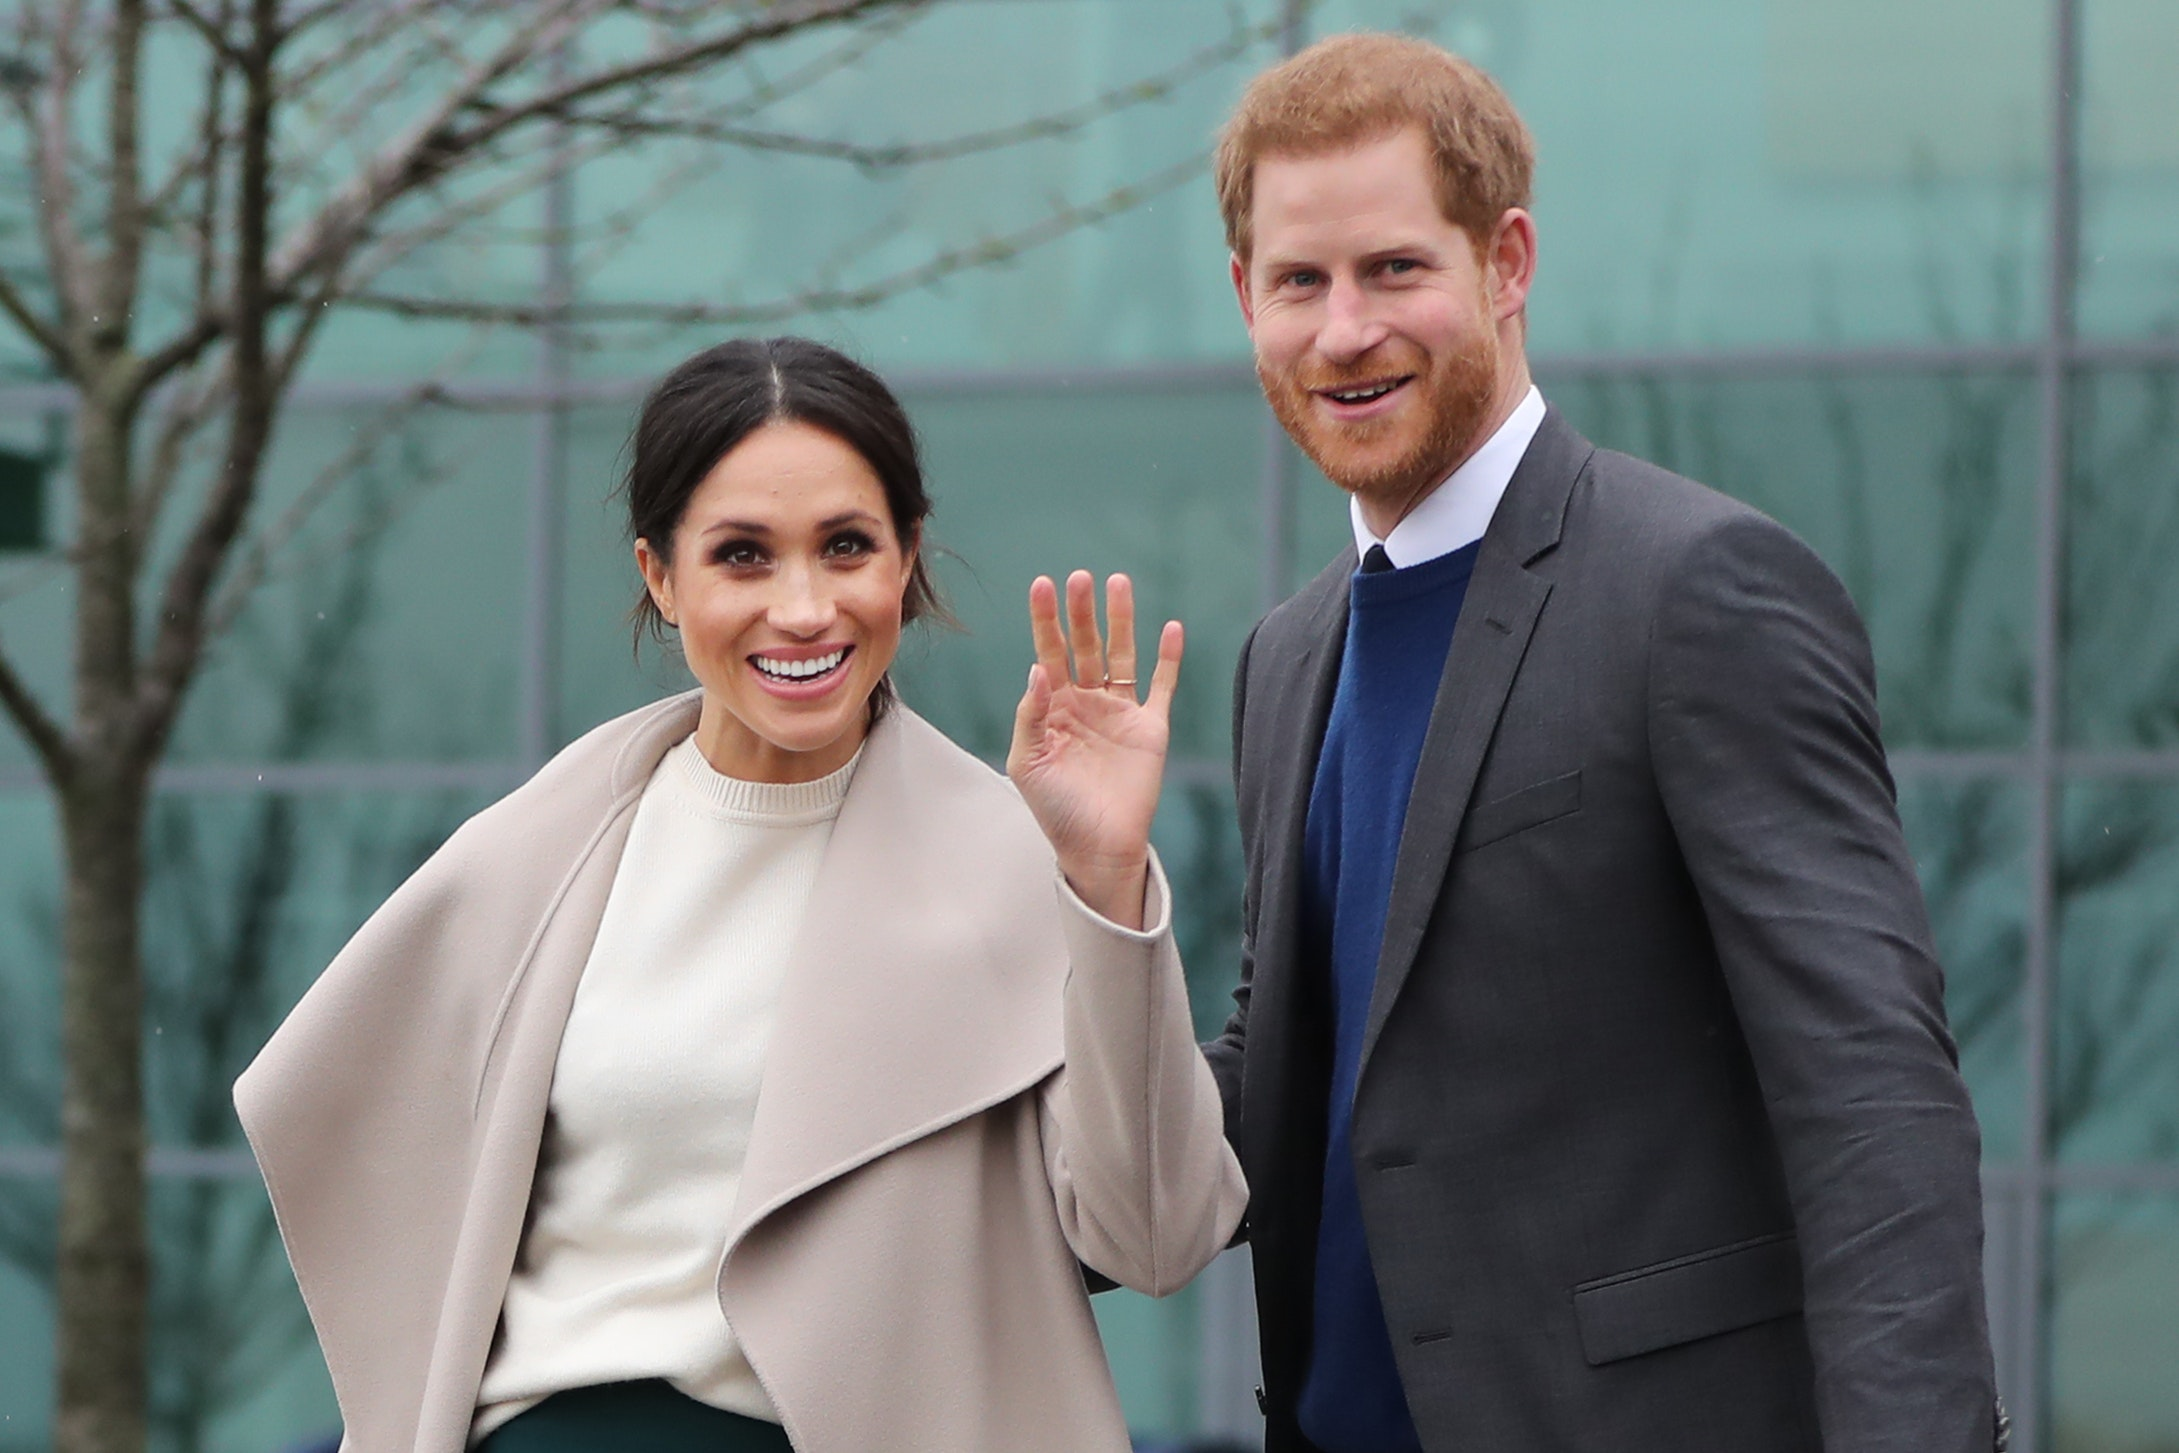 Charity donations preferred to Royal Wedding gifts from guests